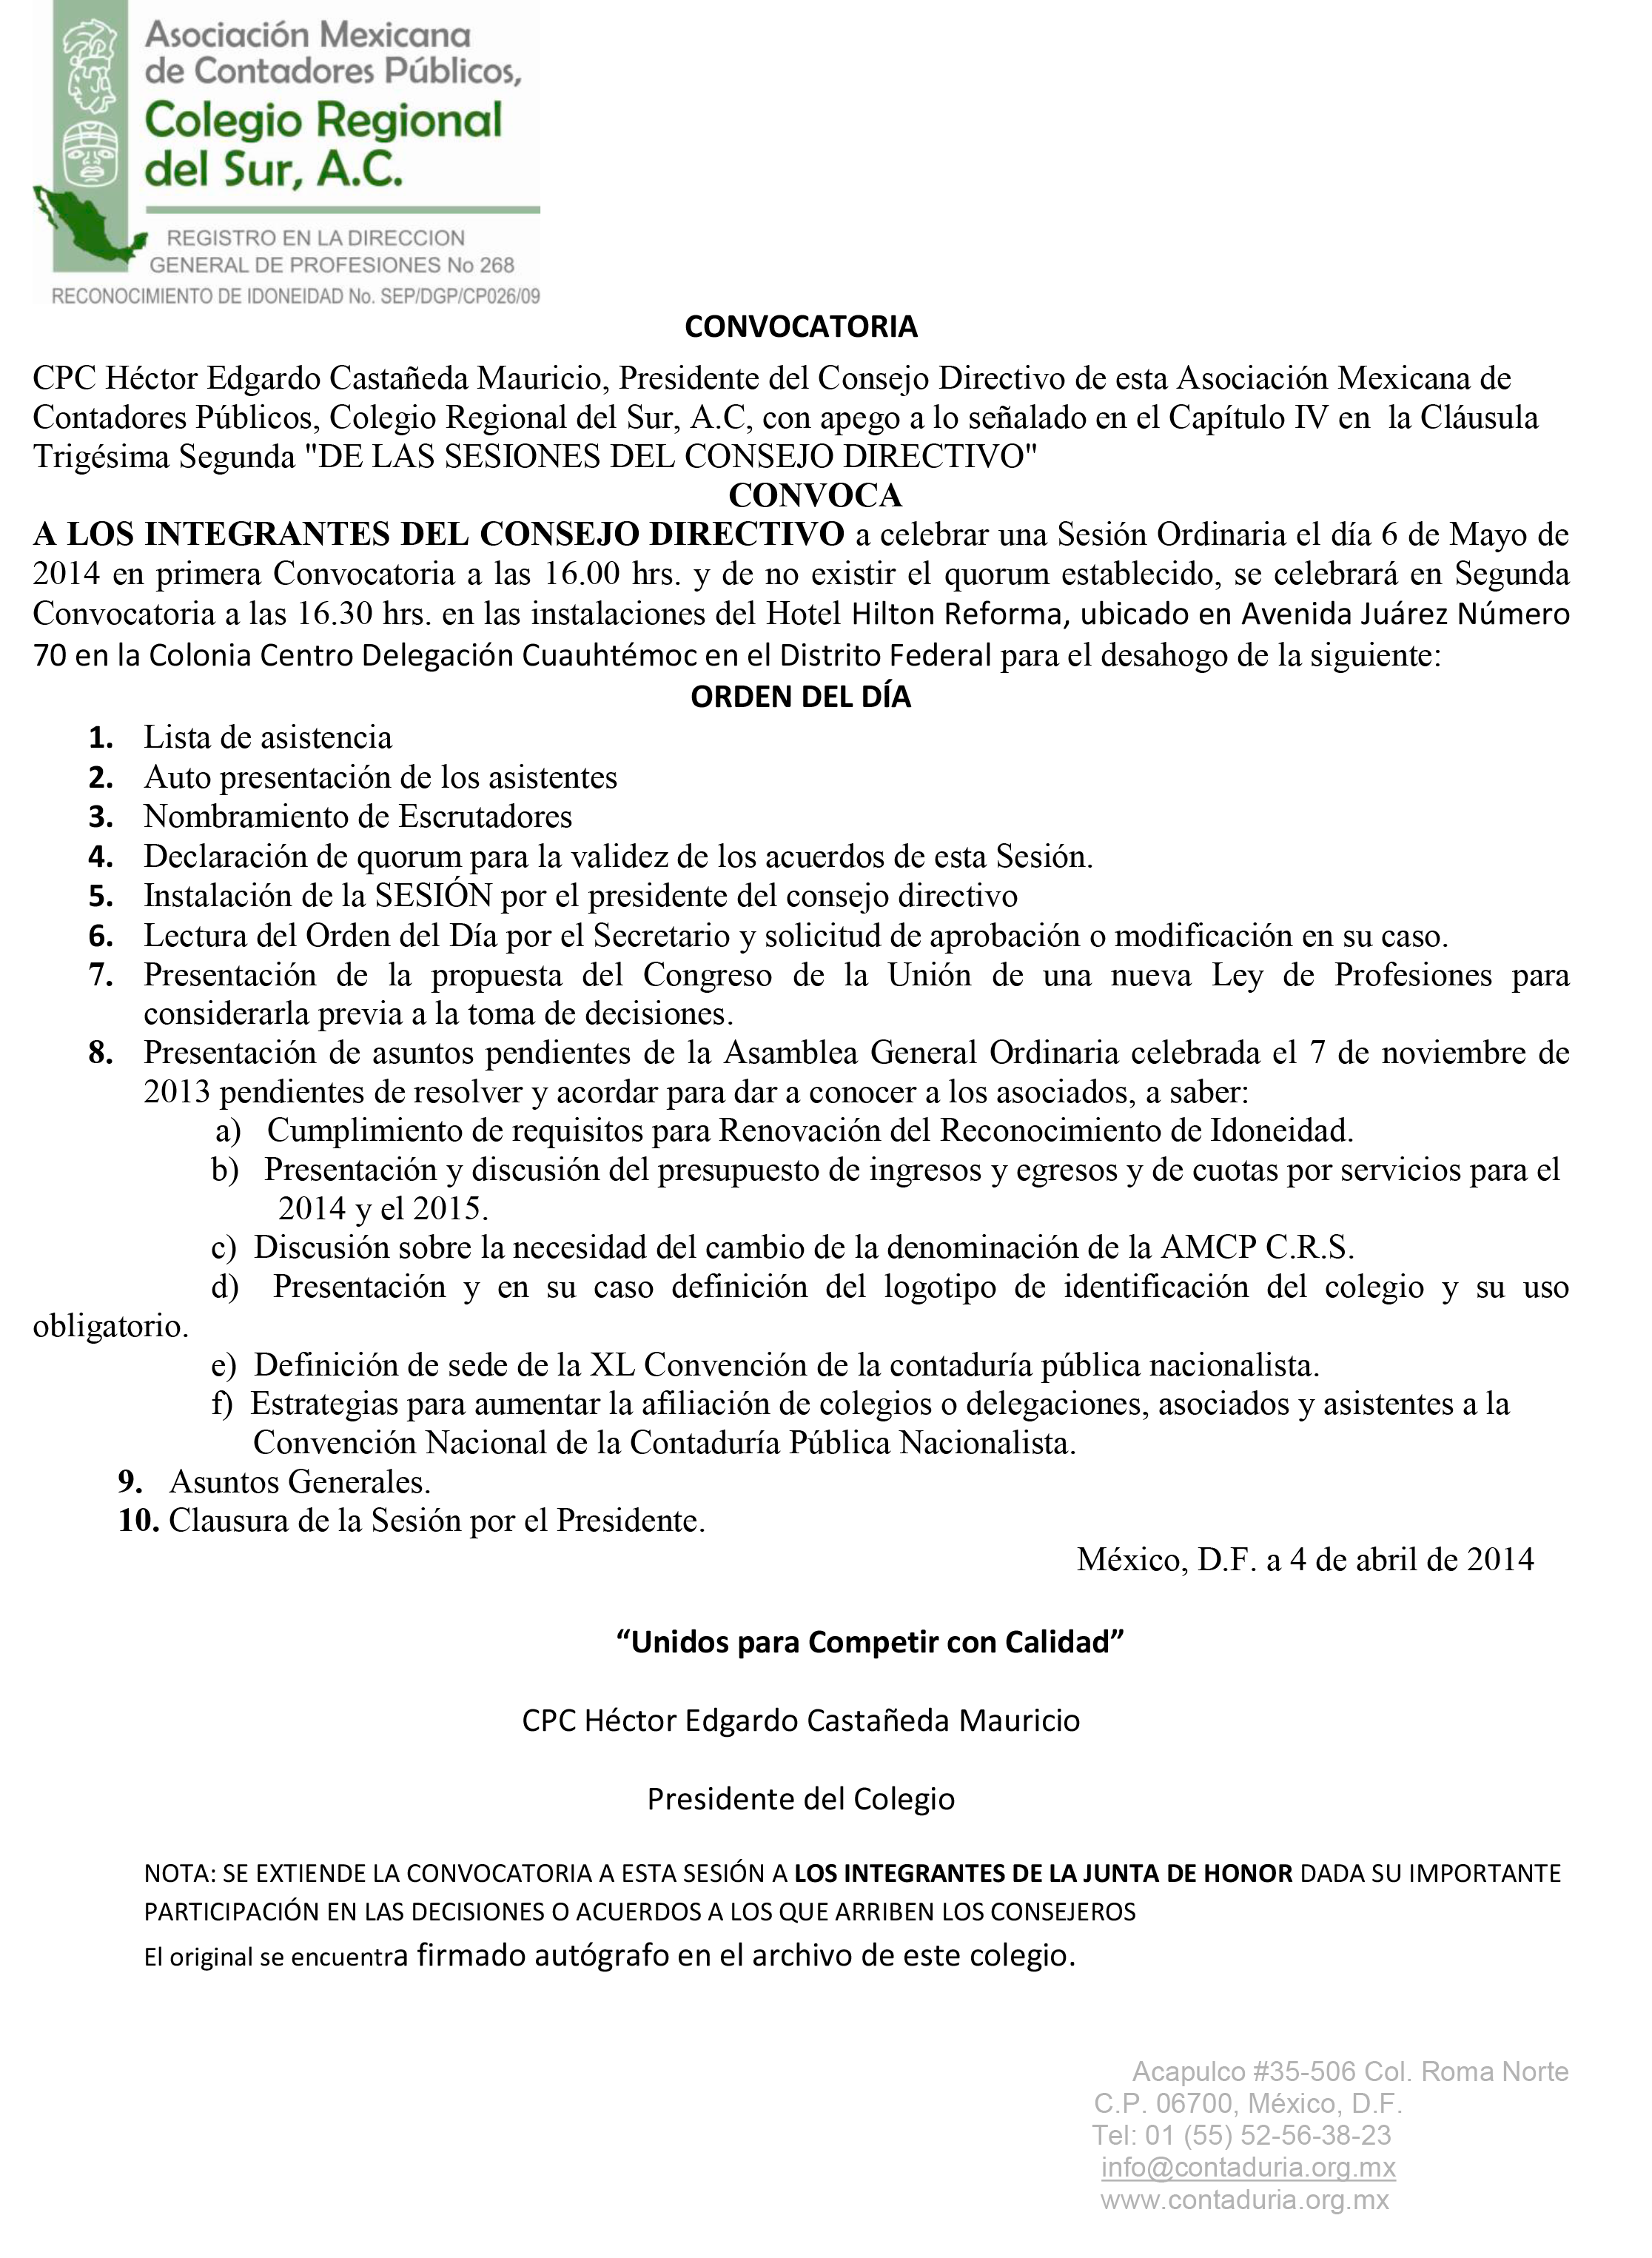 Convocatoria-Abril-2014